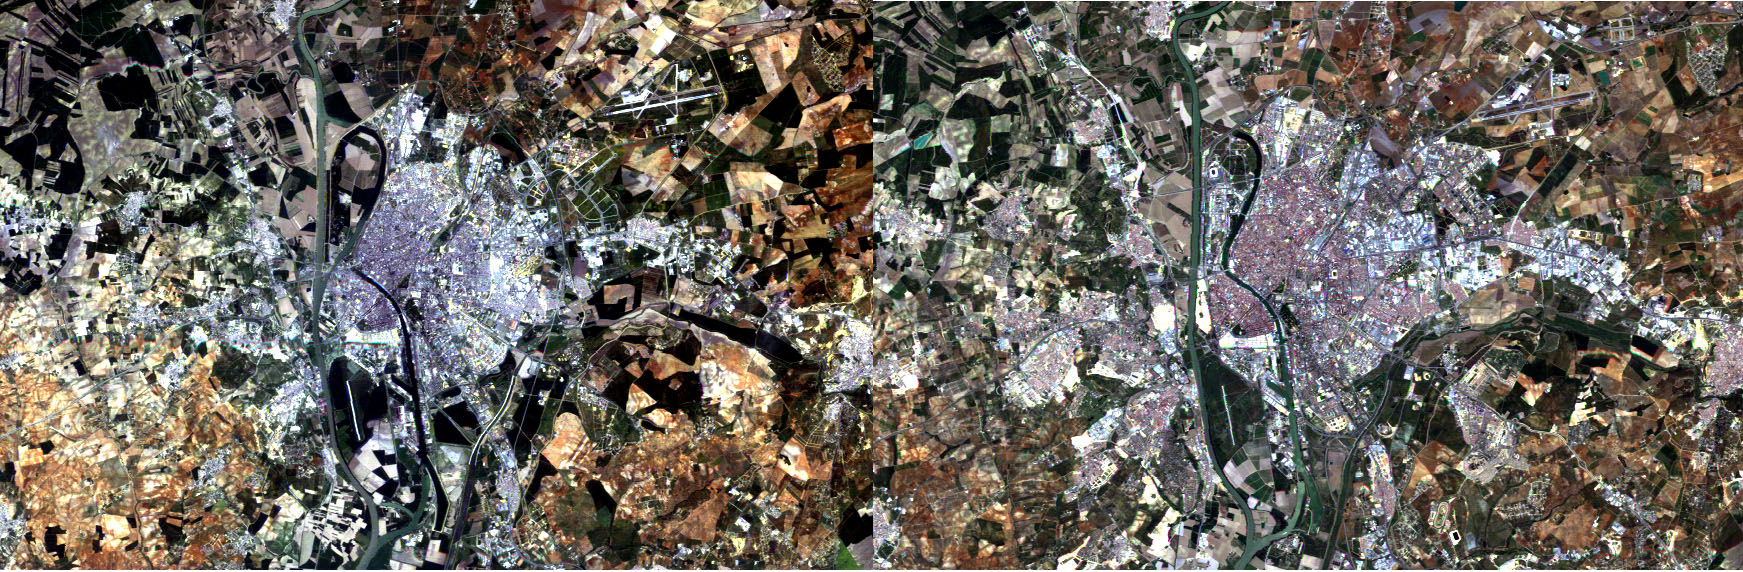 Seville in 1984 and 2004